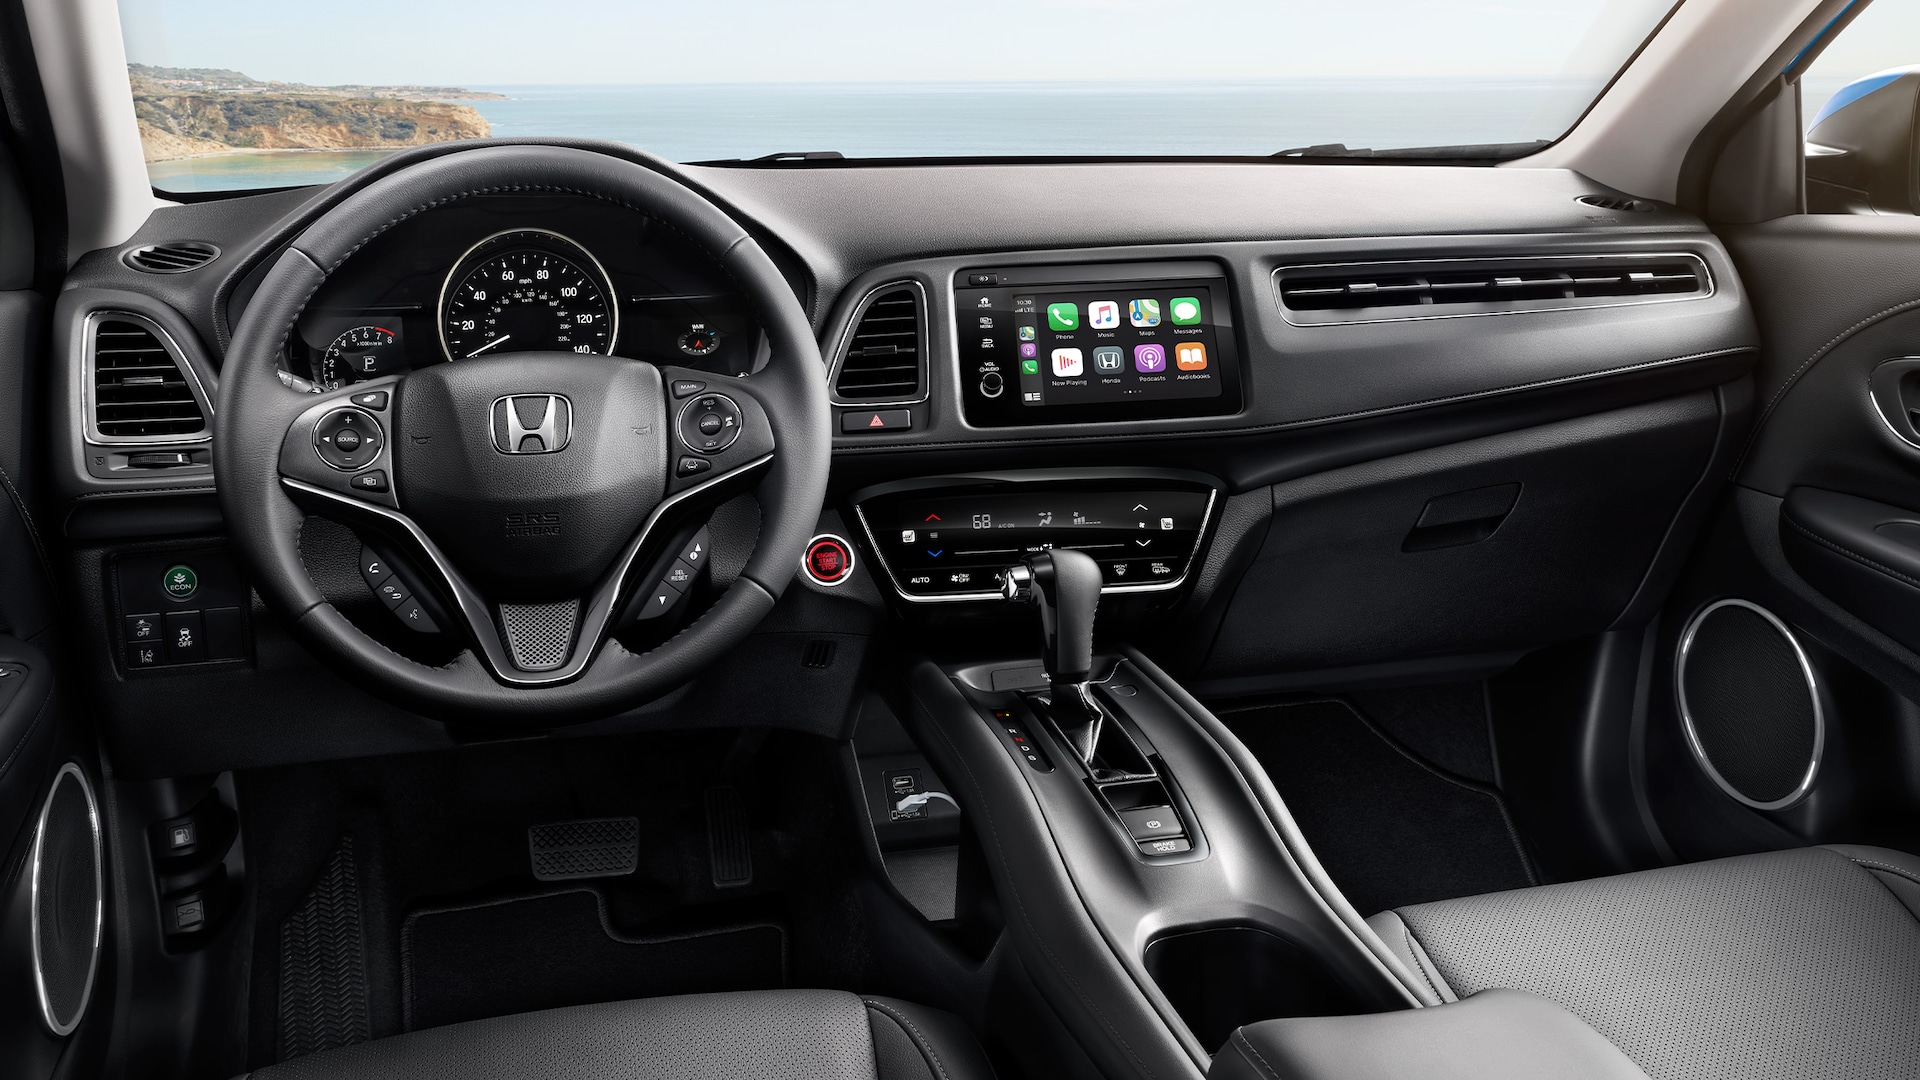 Interior view of steering wheel and instrument panel detail in the 2021 Honda HR-V EX-L with Black Leather.